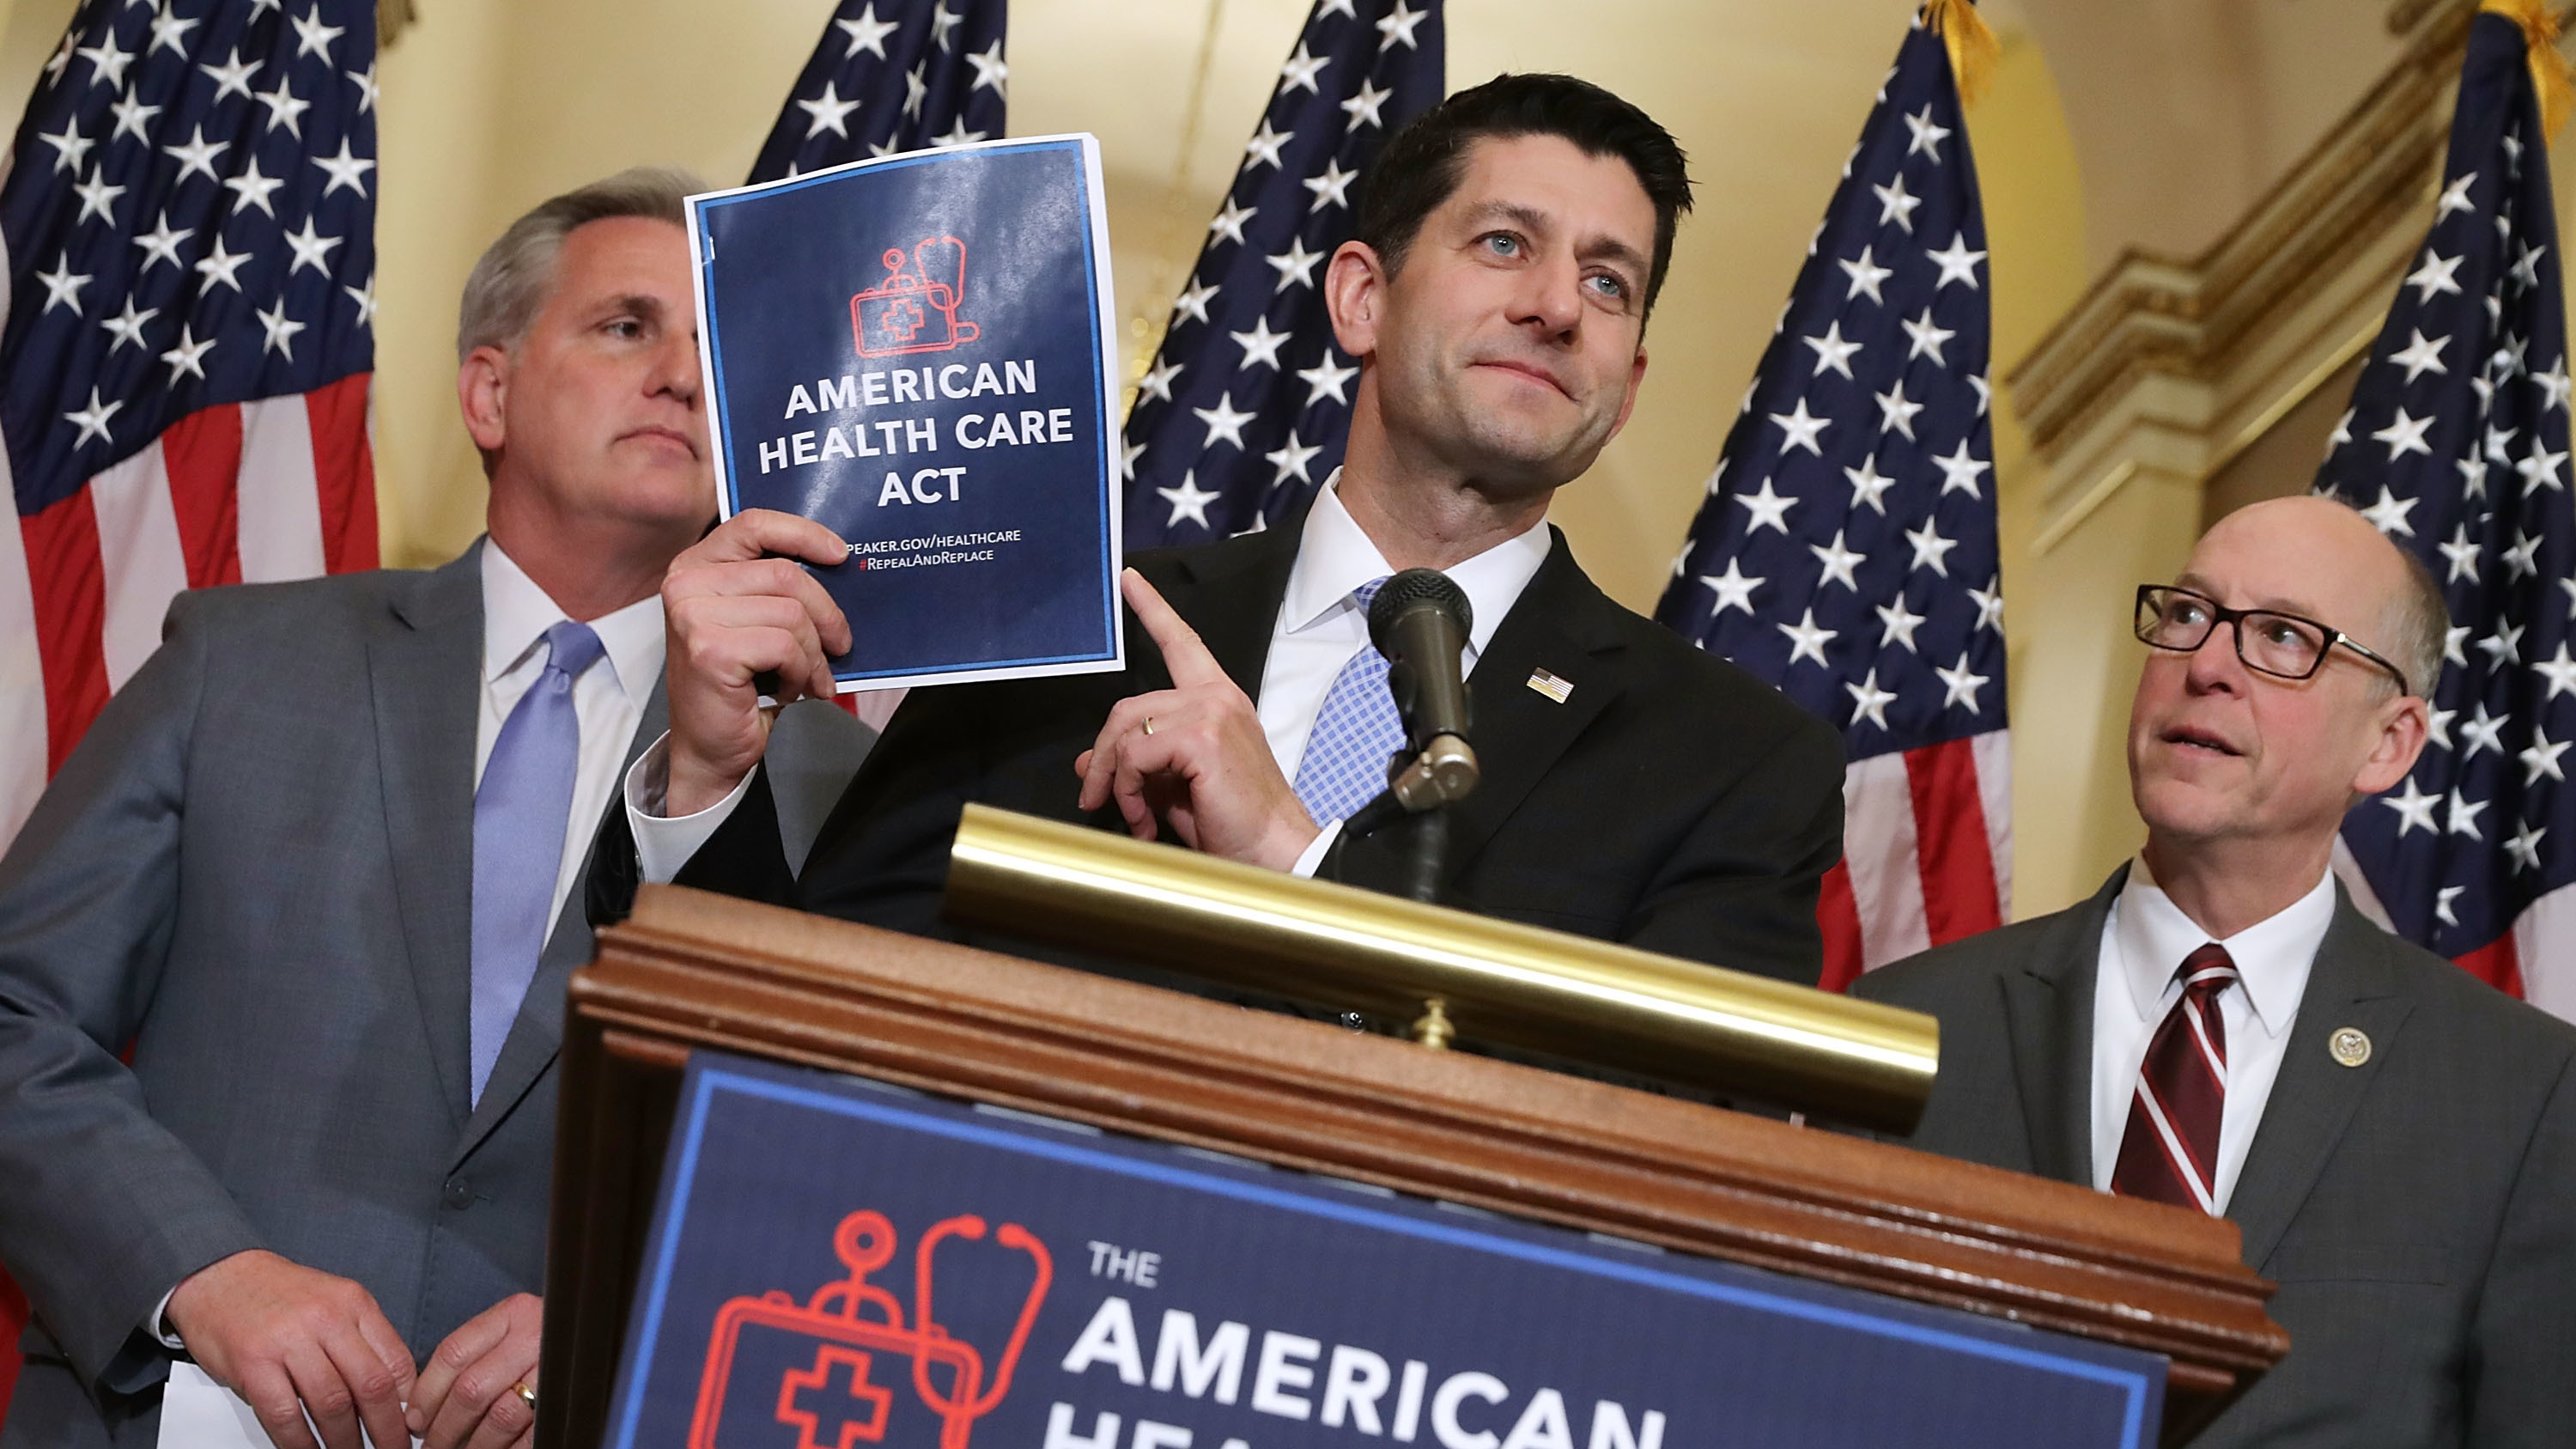 CBO: 23 million fewer Americans insured under House GOP bill